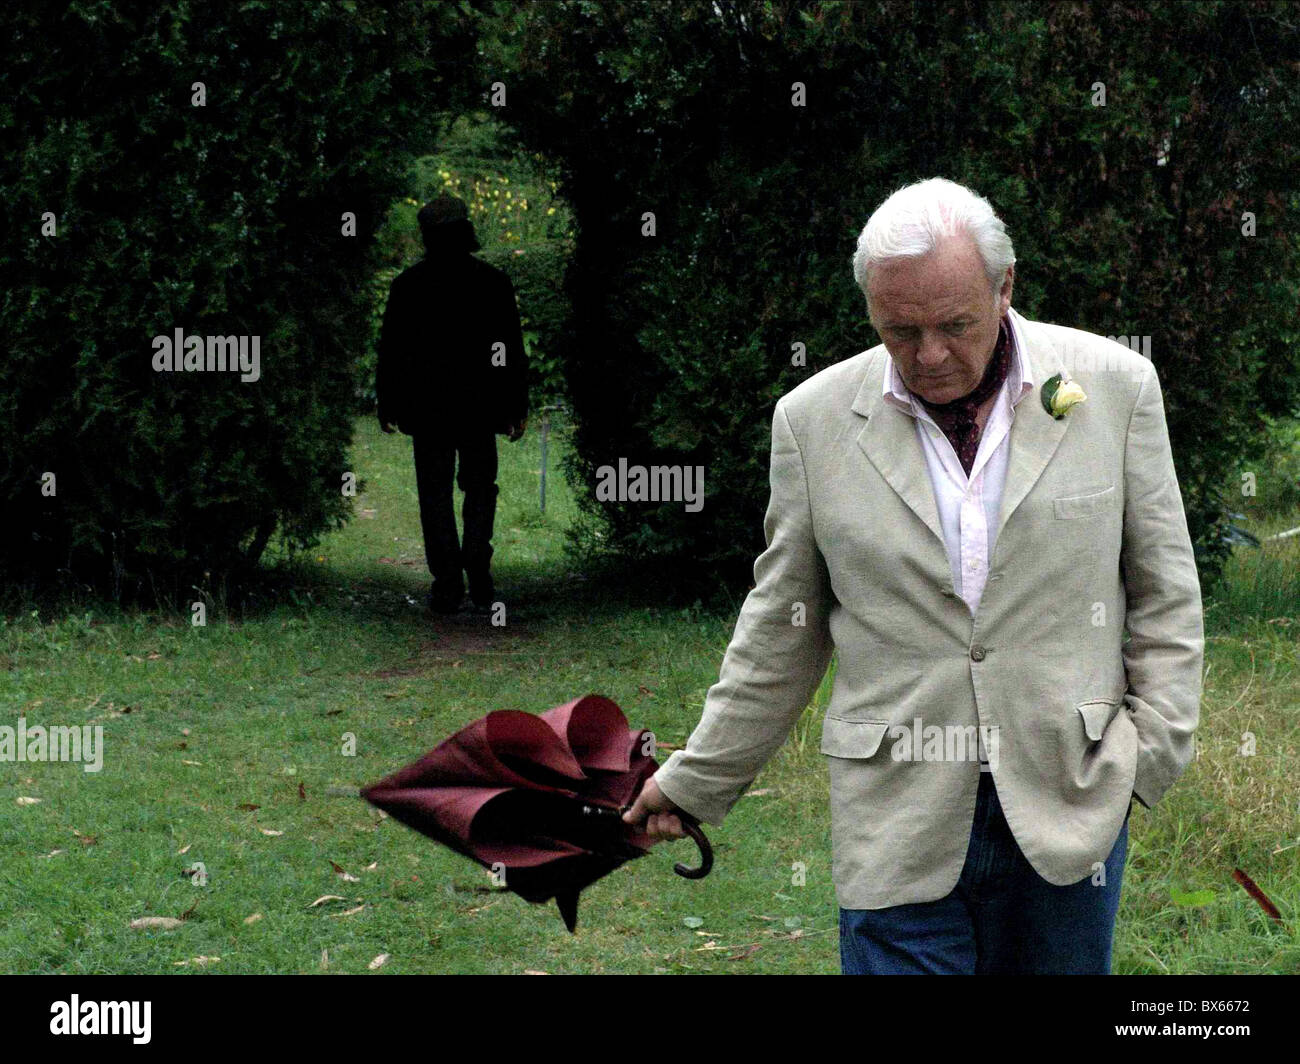 ANTHONY HOPKINS THE CITY OF YOUR FINAL DESTINATION (2009) - Stock Image